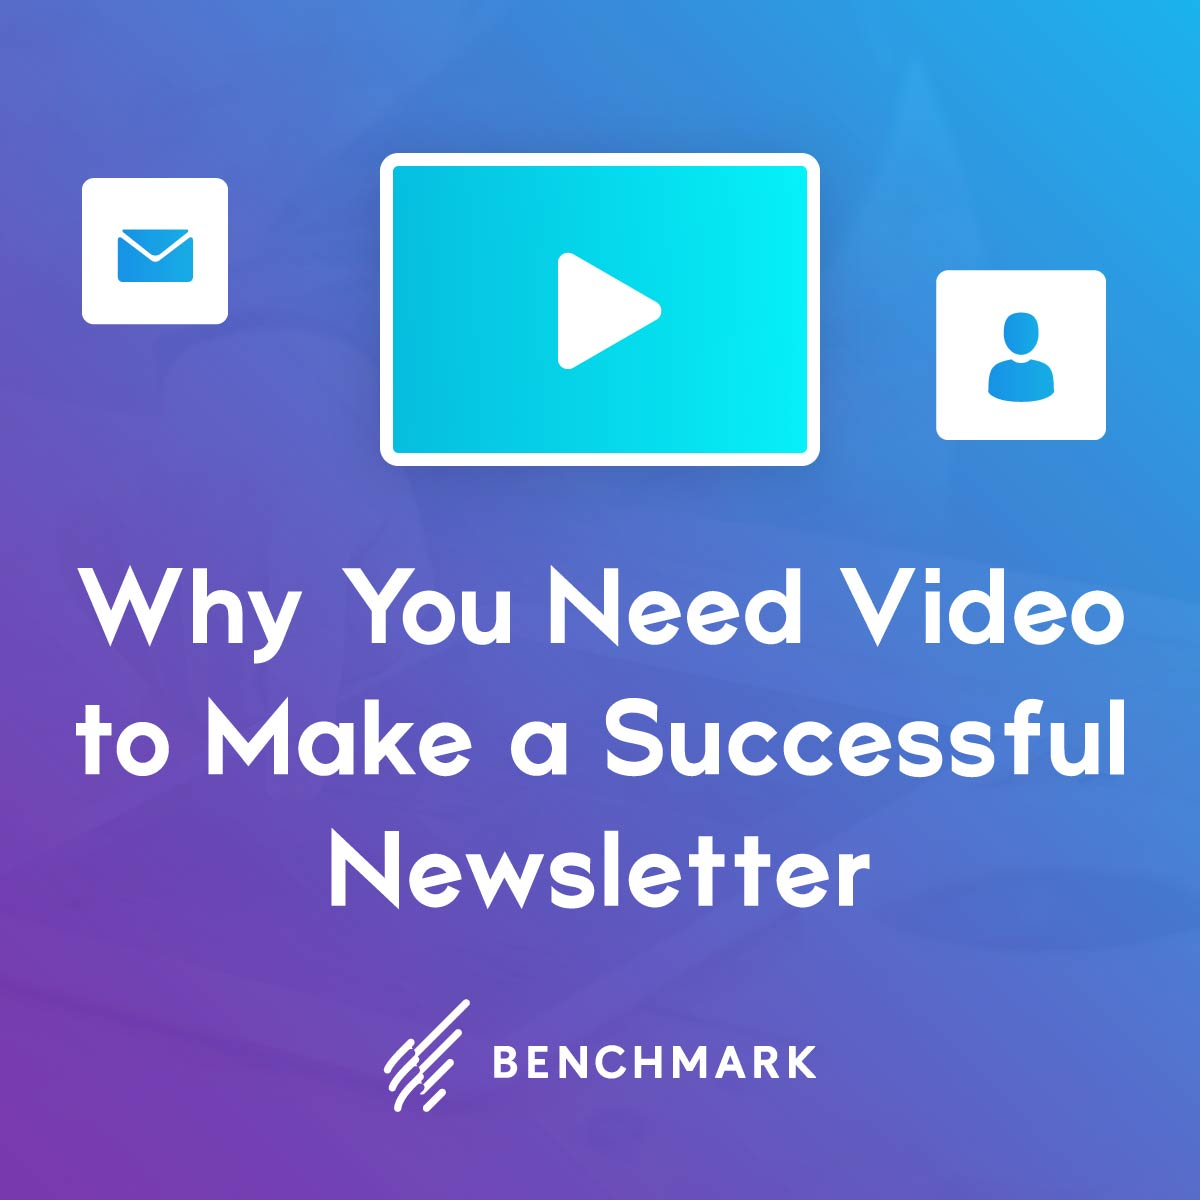 5 Reasons Why You Need Video to Make a Successful Newsletter